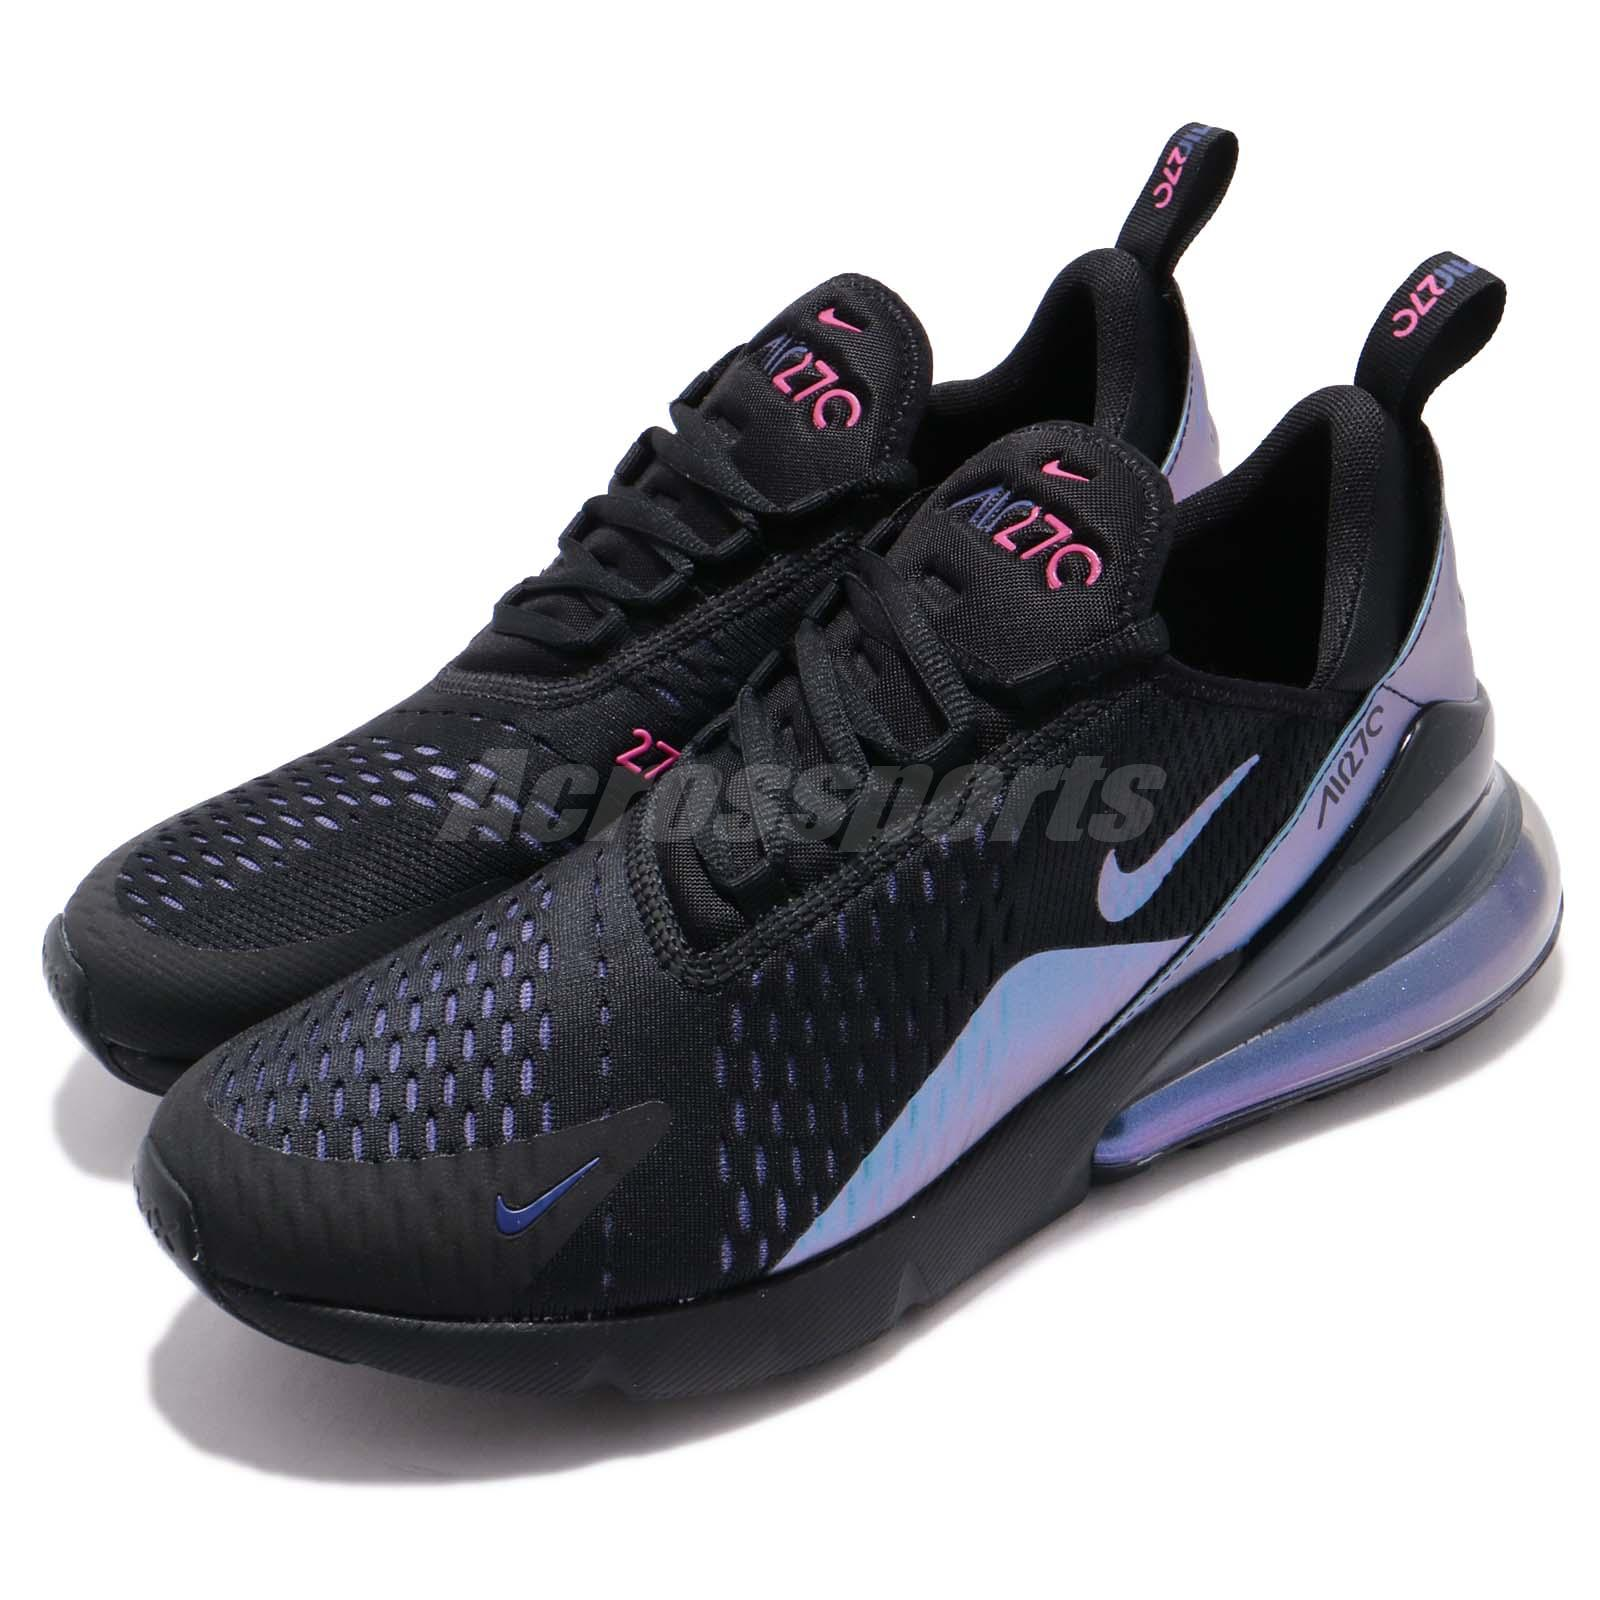 new product cf7e1 dac05 Details about Nike Air Max 270 Throwback Future Black Laser Fuchsia Purple  Men Shoe AH8050-020